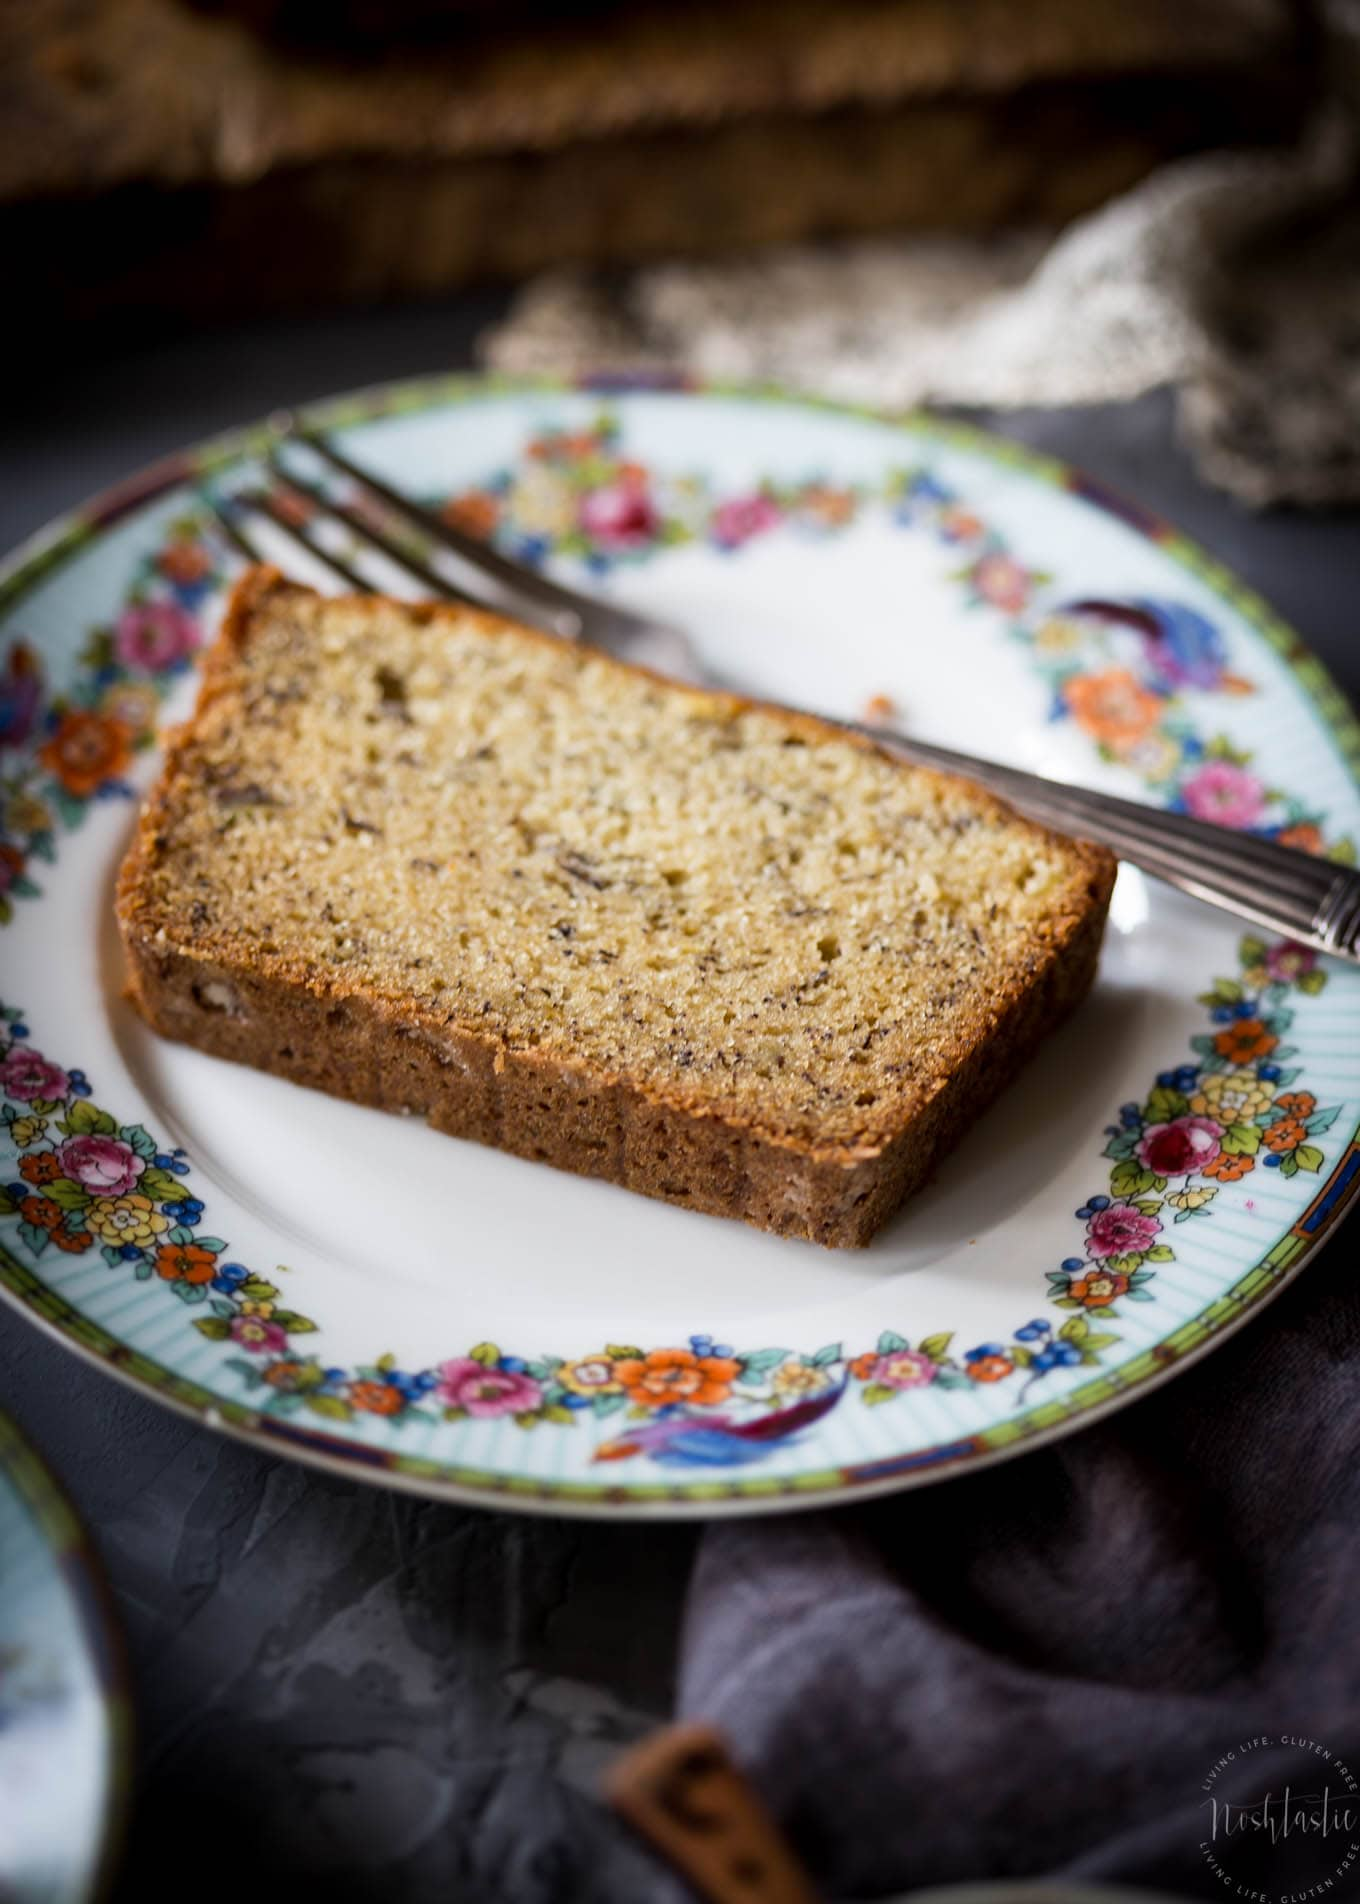 A Healthy gluten free banana bread recipe is dairy free too! you can make it easily with bananas, gluten free flour, sugar and dairy free buttermilk!